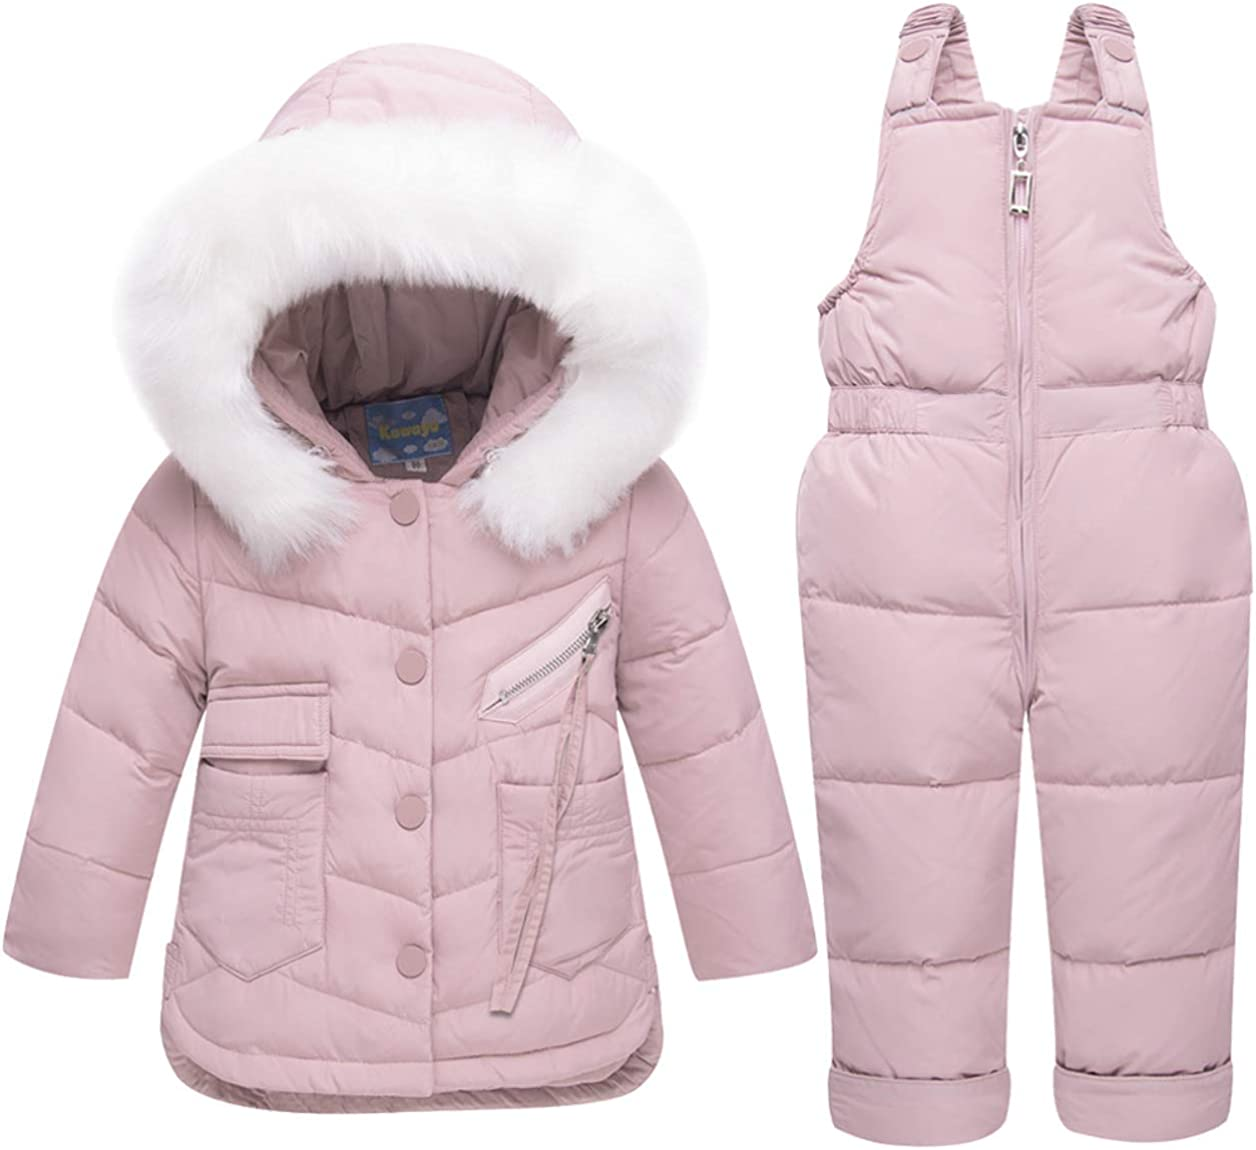 MissChild Baby Girls Winter Snowsuit Ski Snowpants Bib Down Coat Hooded Puffer Jacket 2 Piece Set Outfit